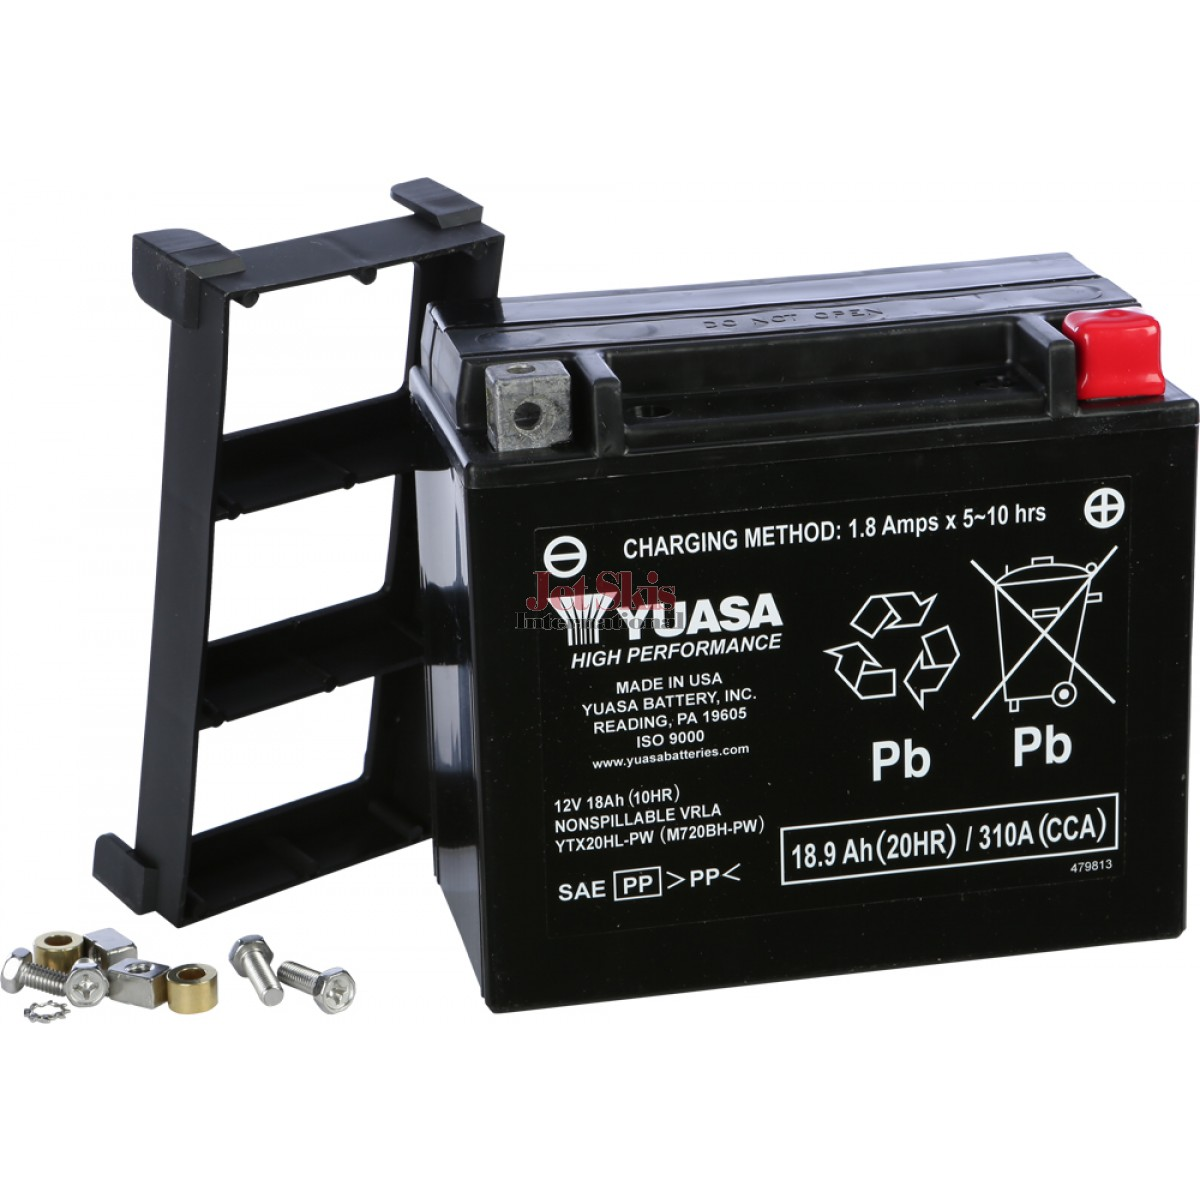 yuasa battery ytx20hl pw for kawaski jet skis polaris watercraft sea doo watercraft and. Black Bedroom Furniture Sets. Home Design Ideas